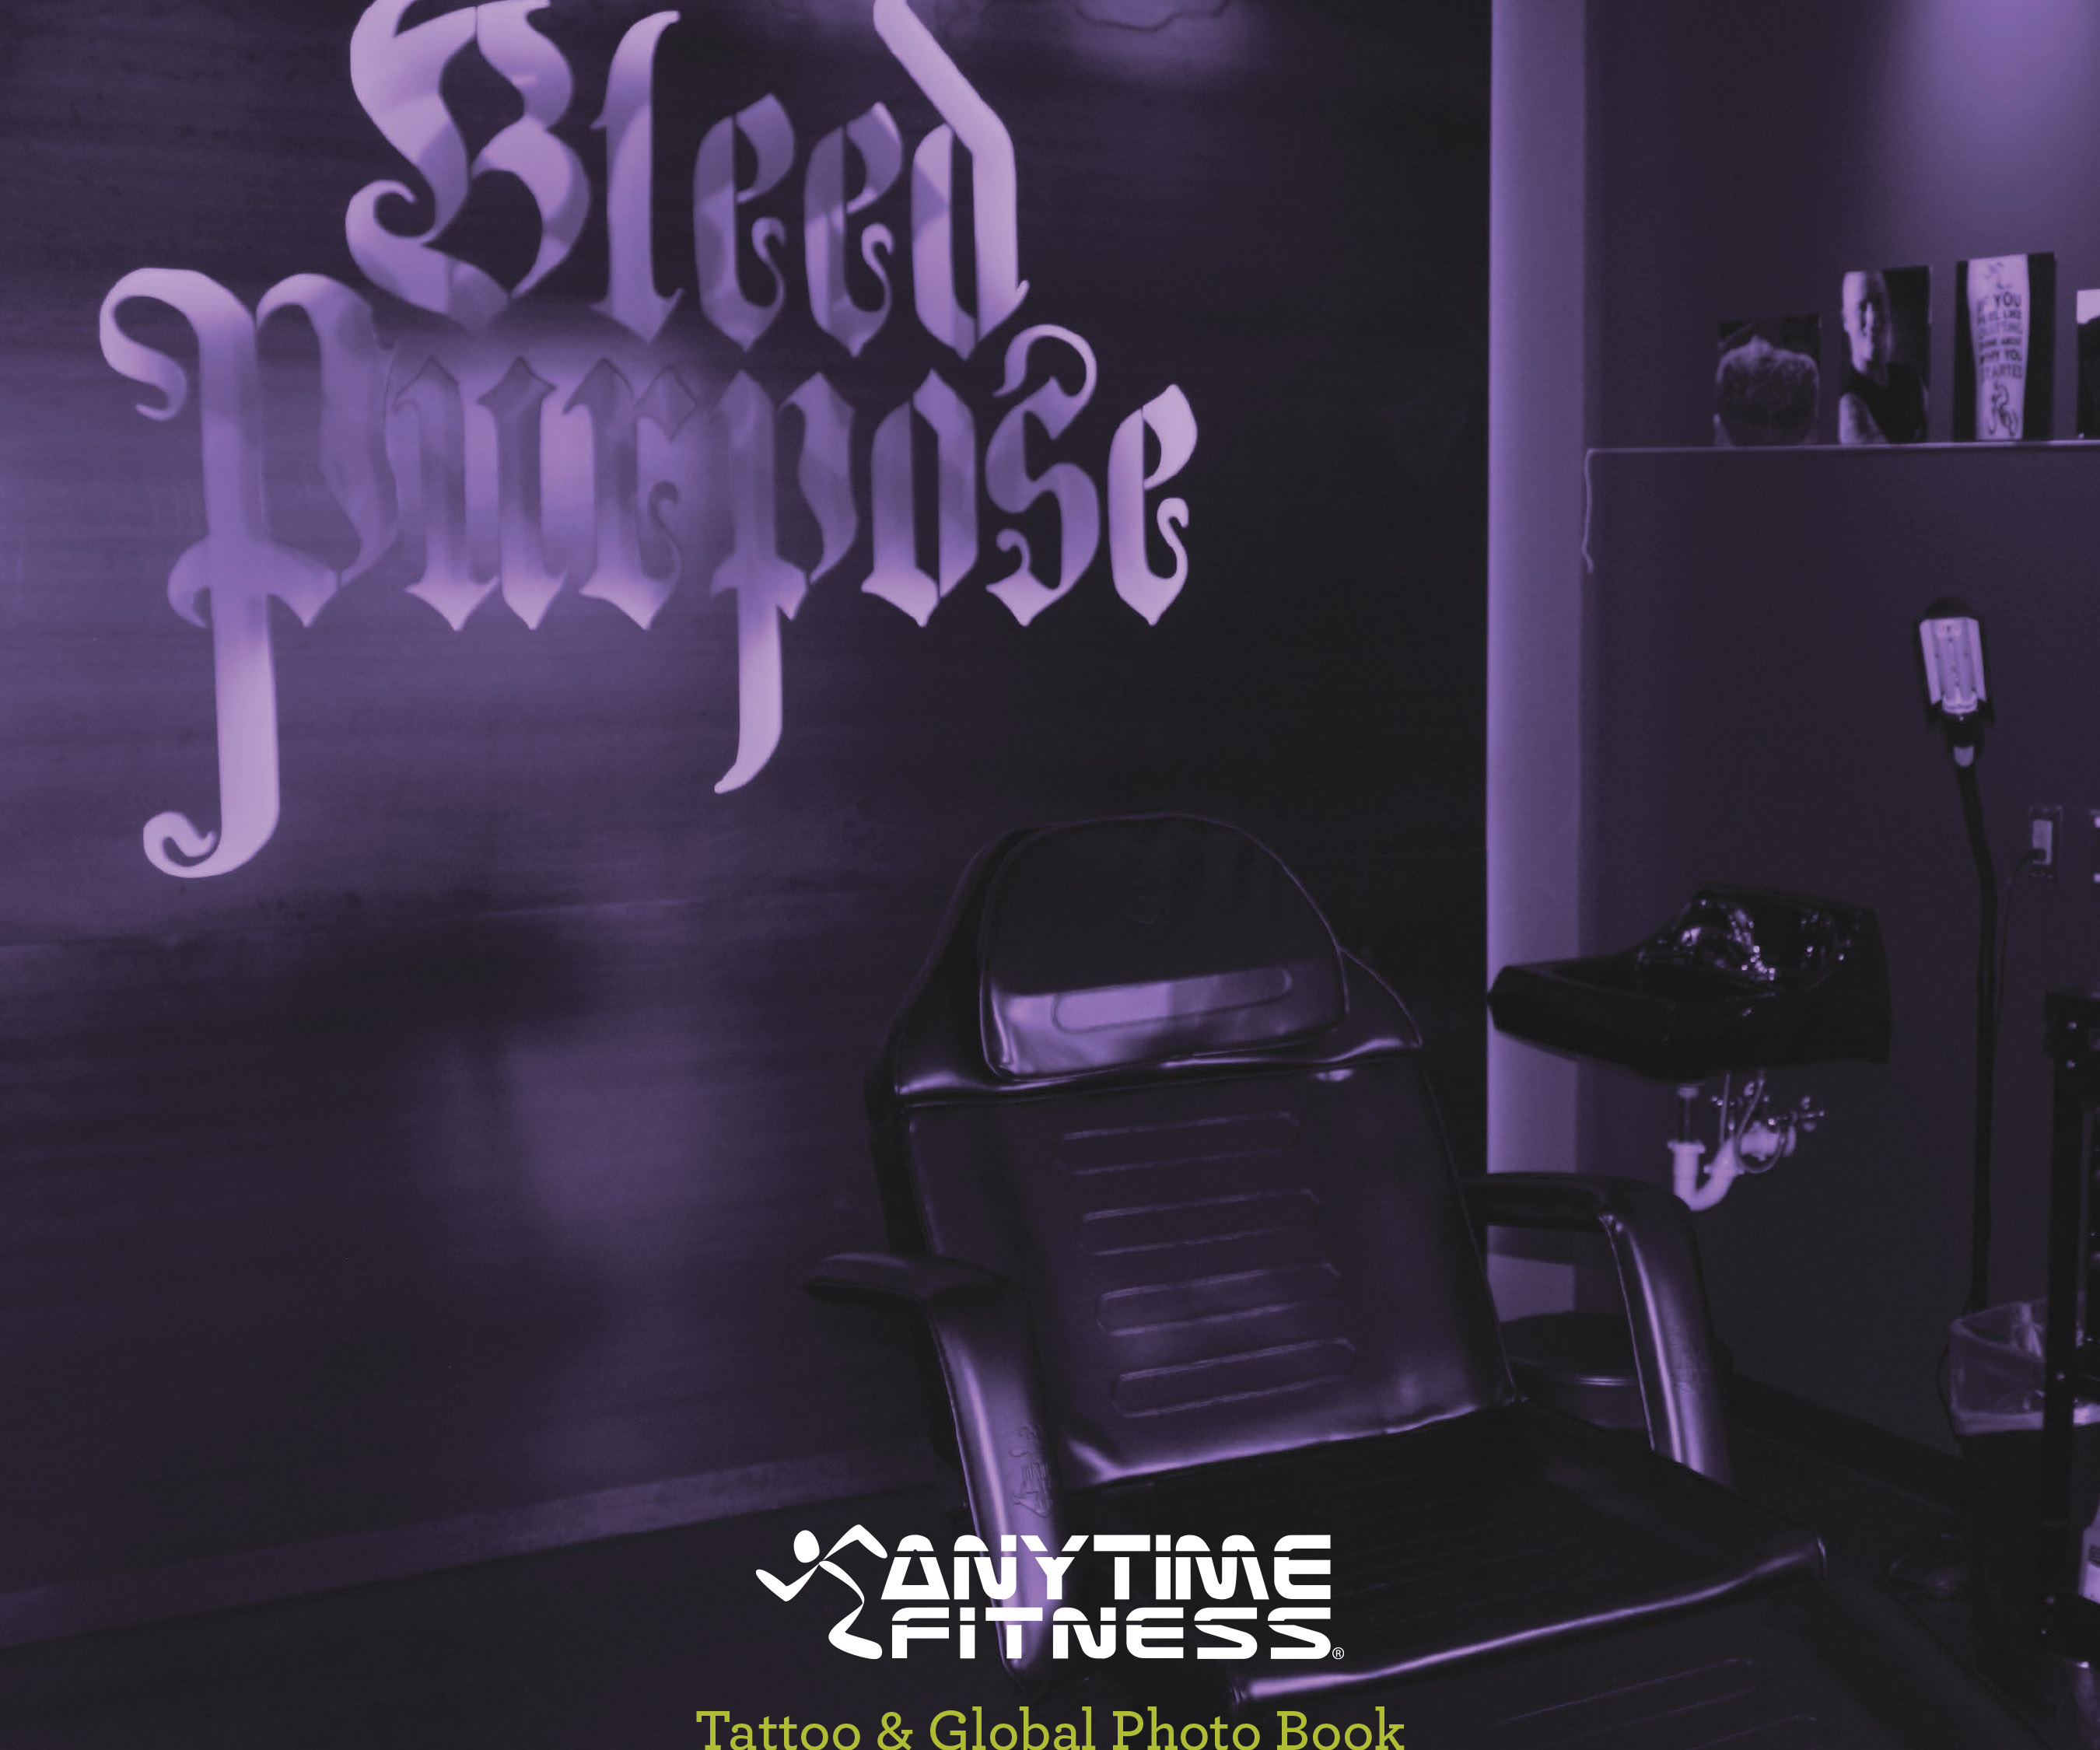 Anytime Fitness Tattoo and Photo Book